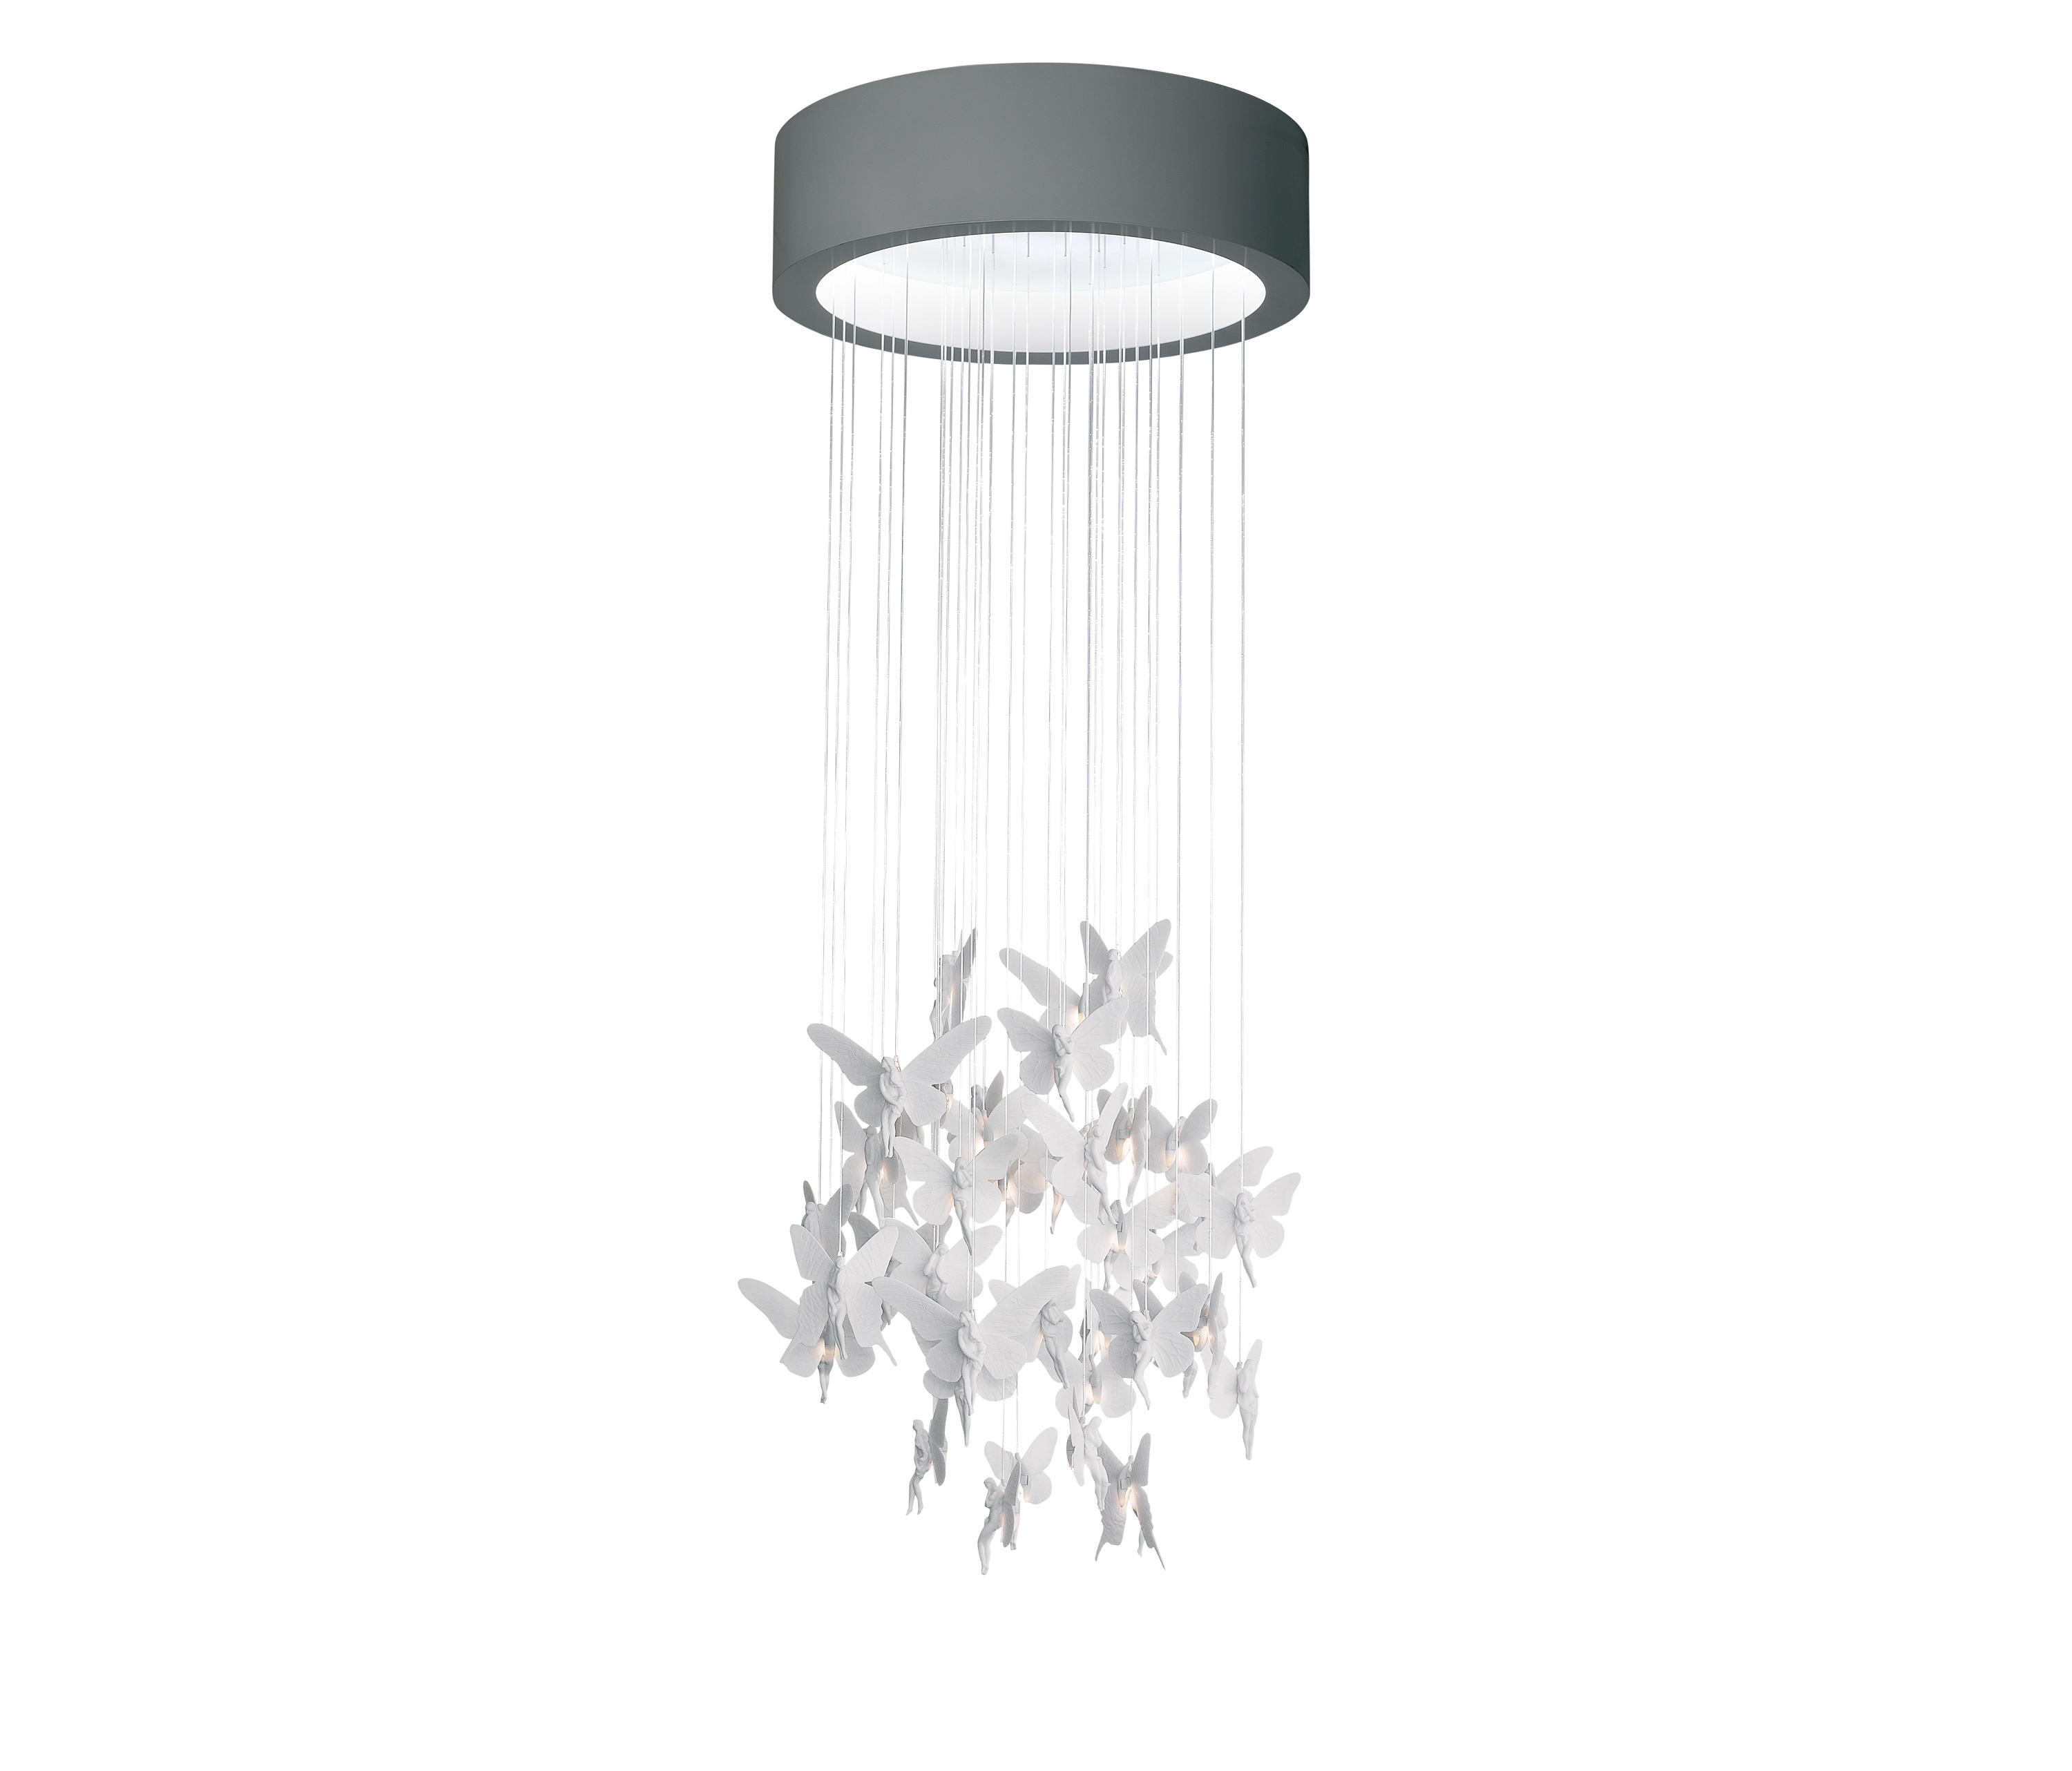 Niagara chandelier general lighting from lladr architonic niagara chandelier by lladr general lighting arubaitofo Choice Image